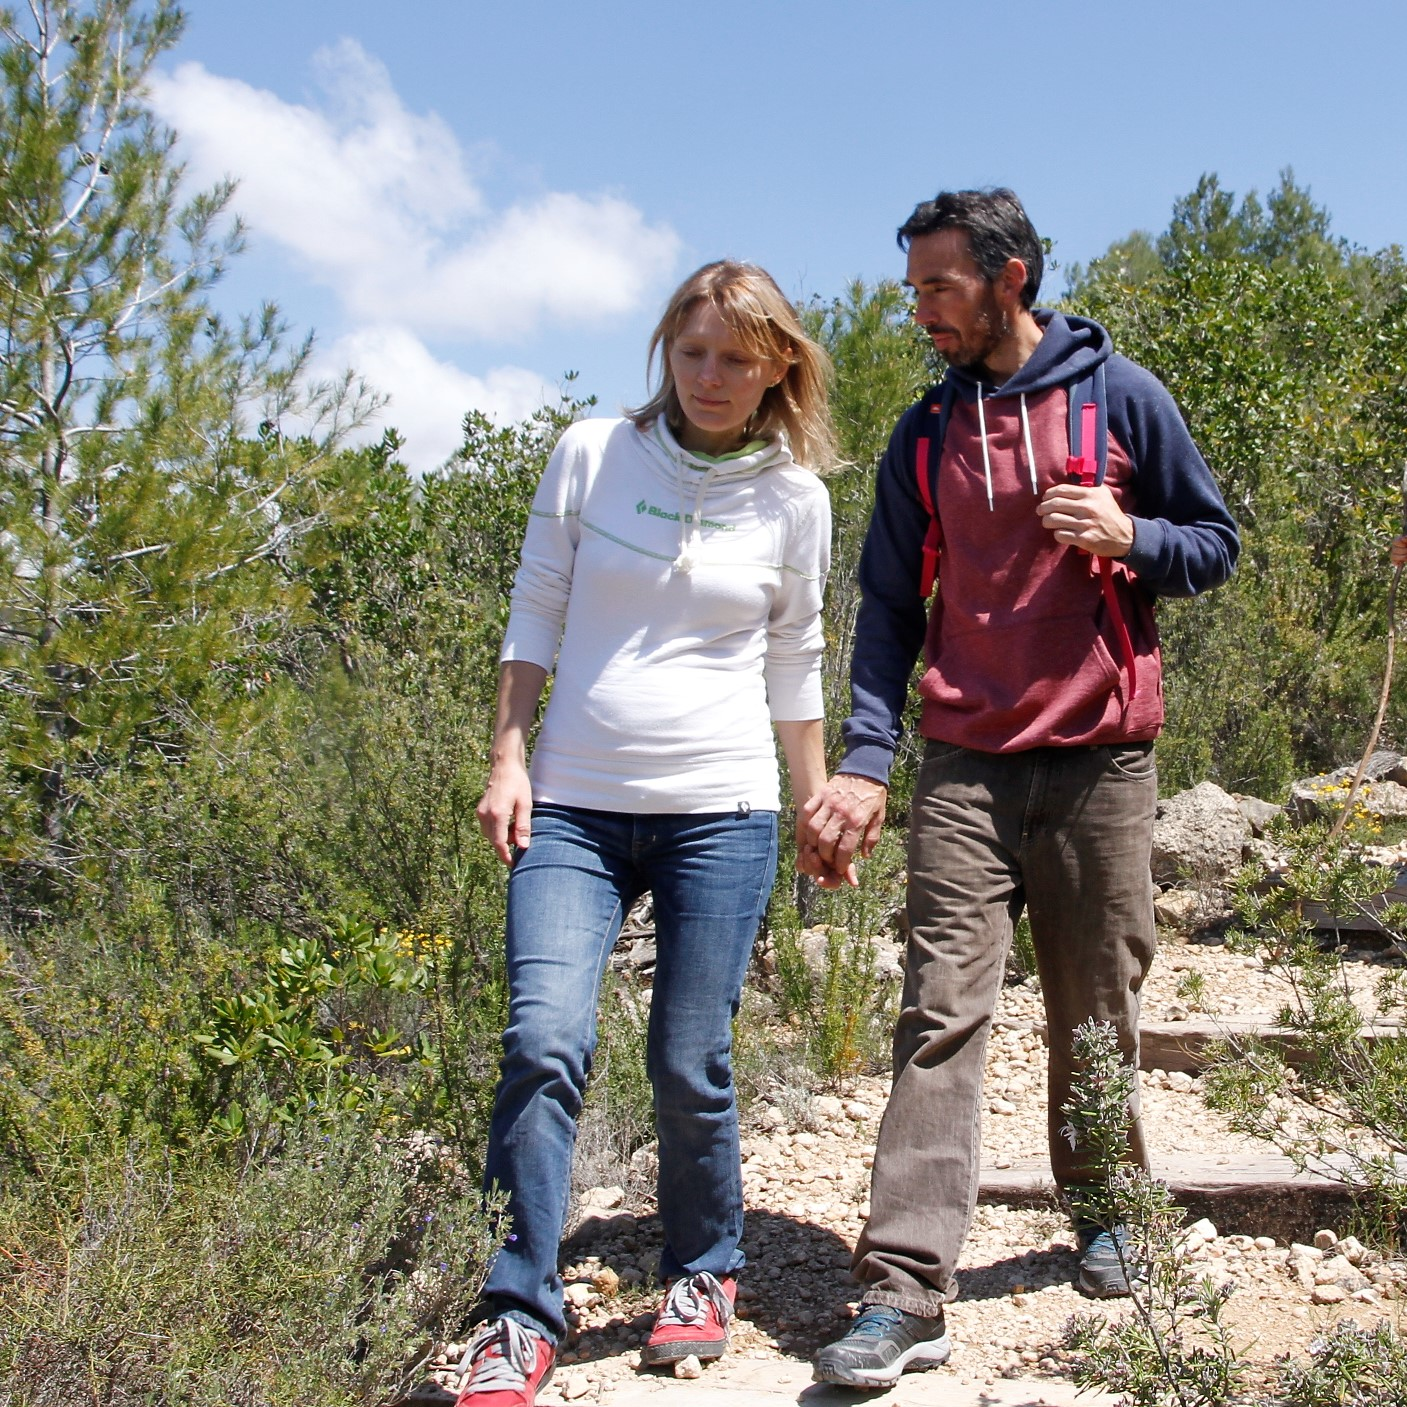 Besides all the work for making new routes, Maya and Vicent have made amazing topos for climbers to enjoy.